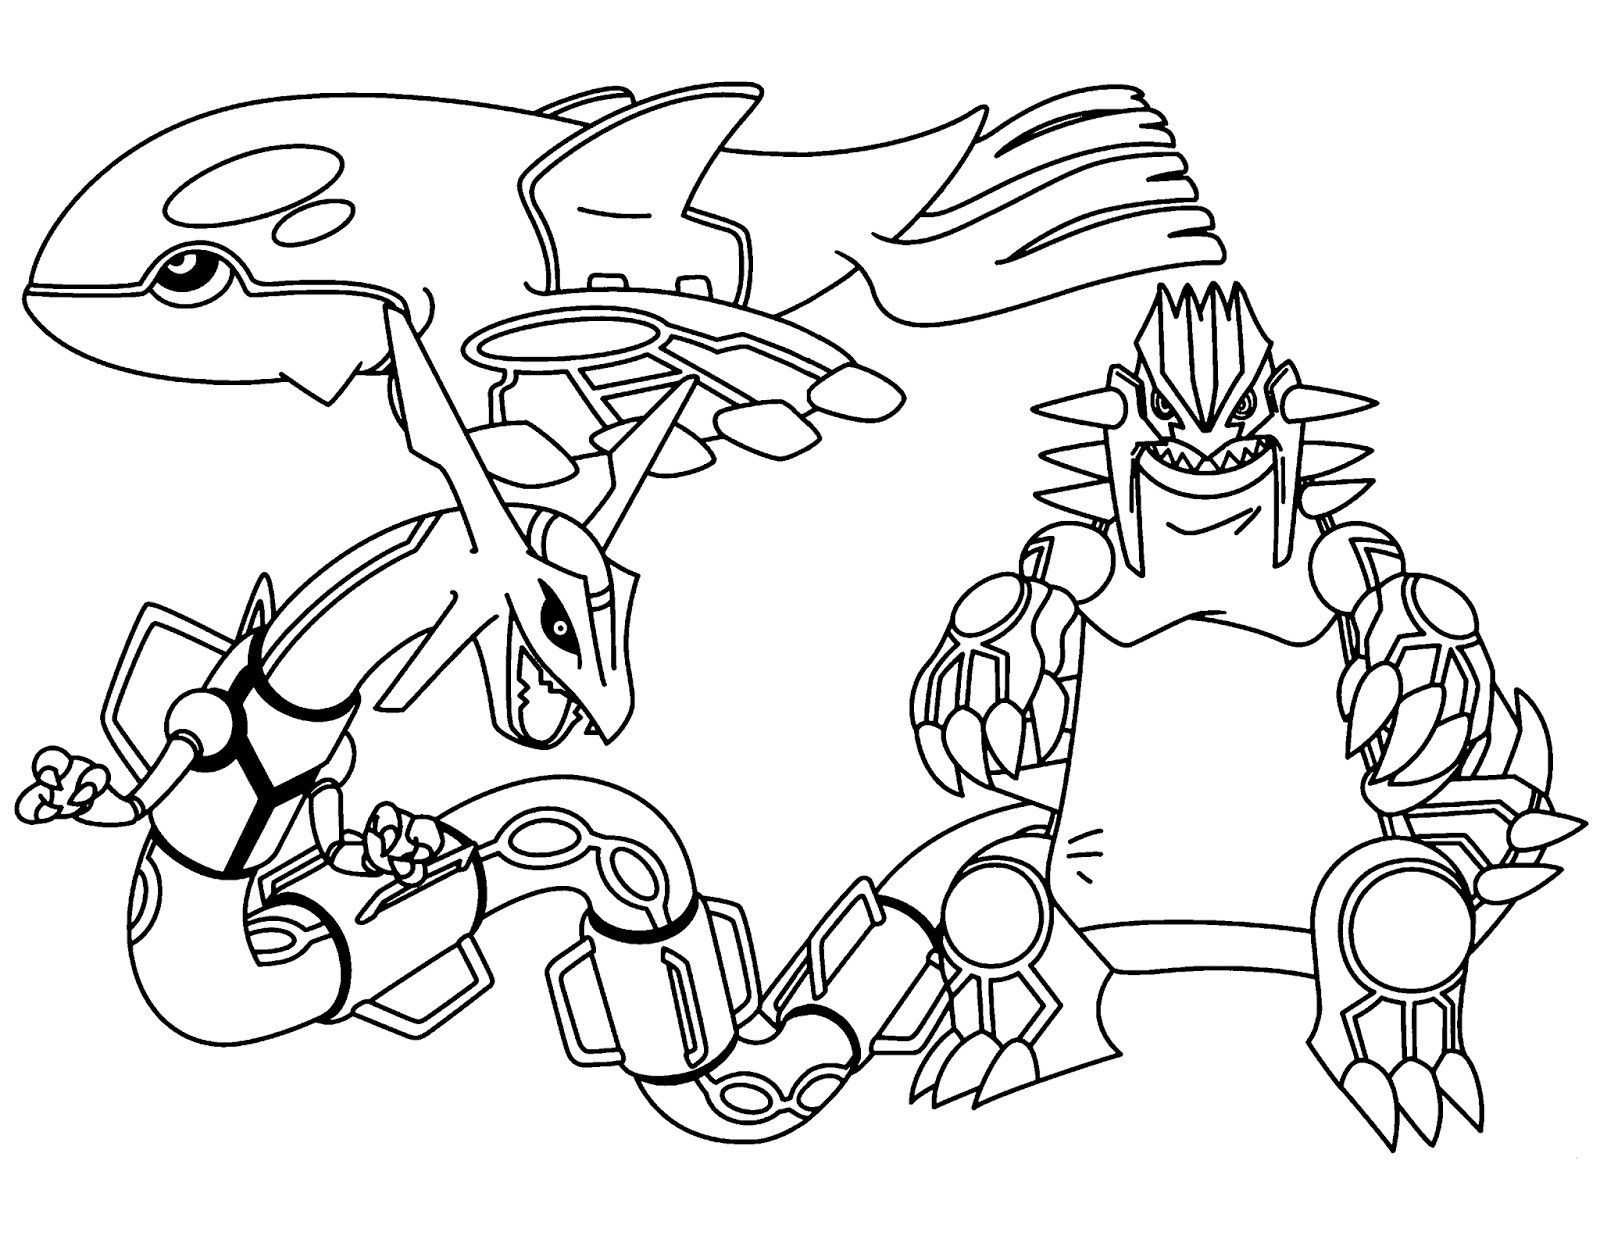 Legendary Pokemon Coloring Pages Rayquaza Through the